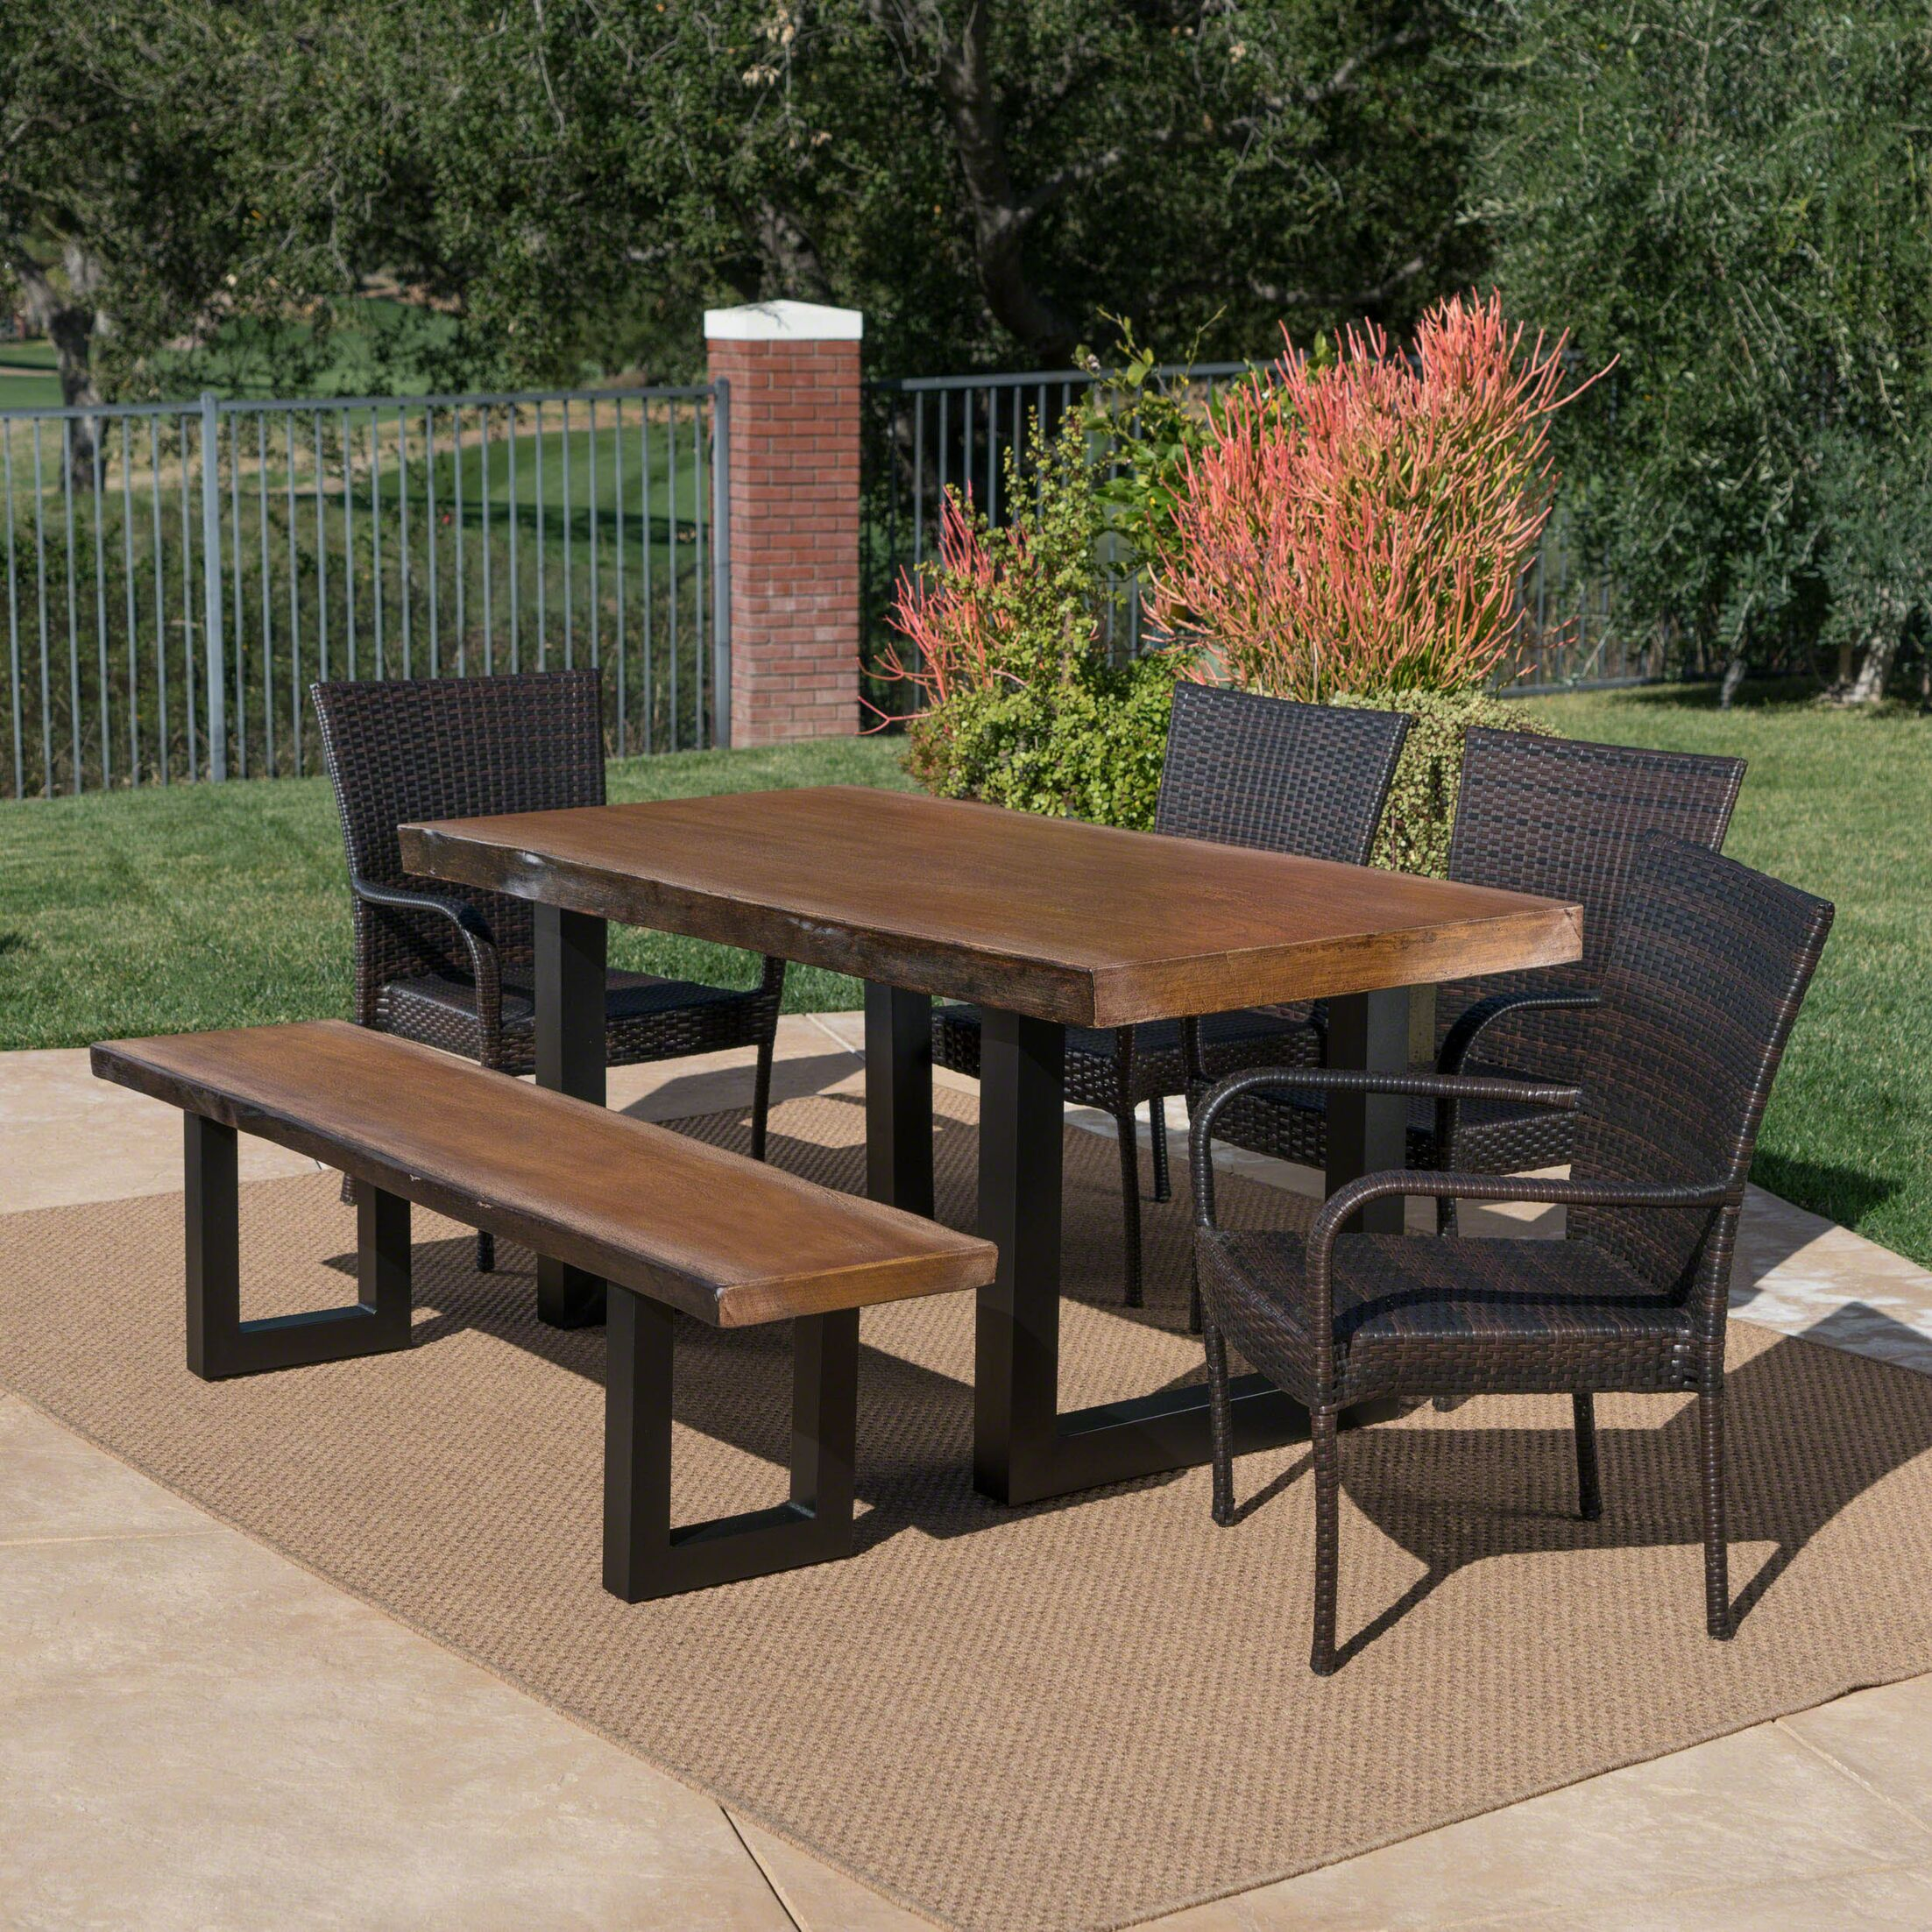 Woodell Outdoor 6 Piece Dining Set